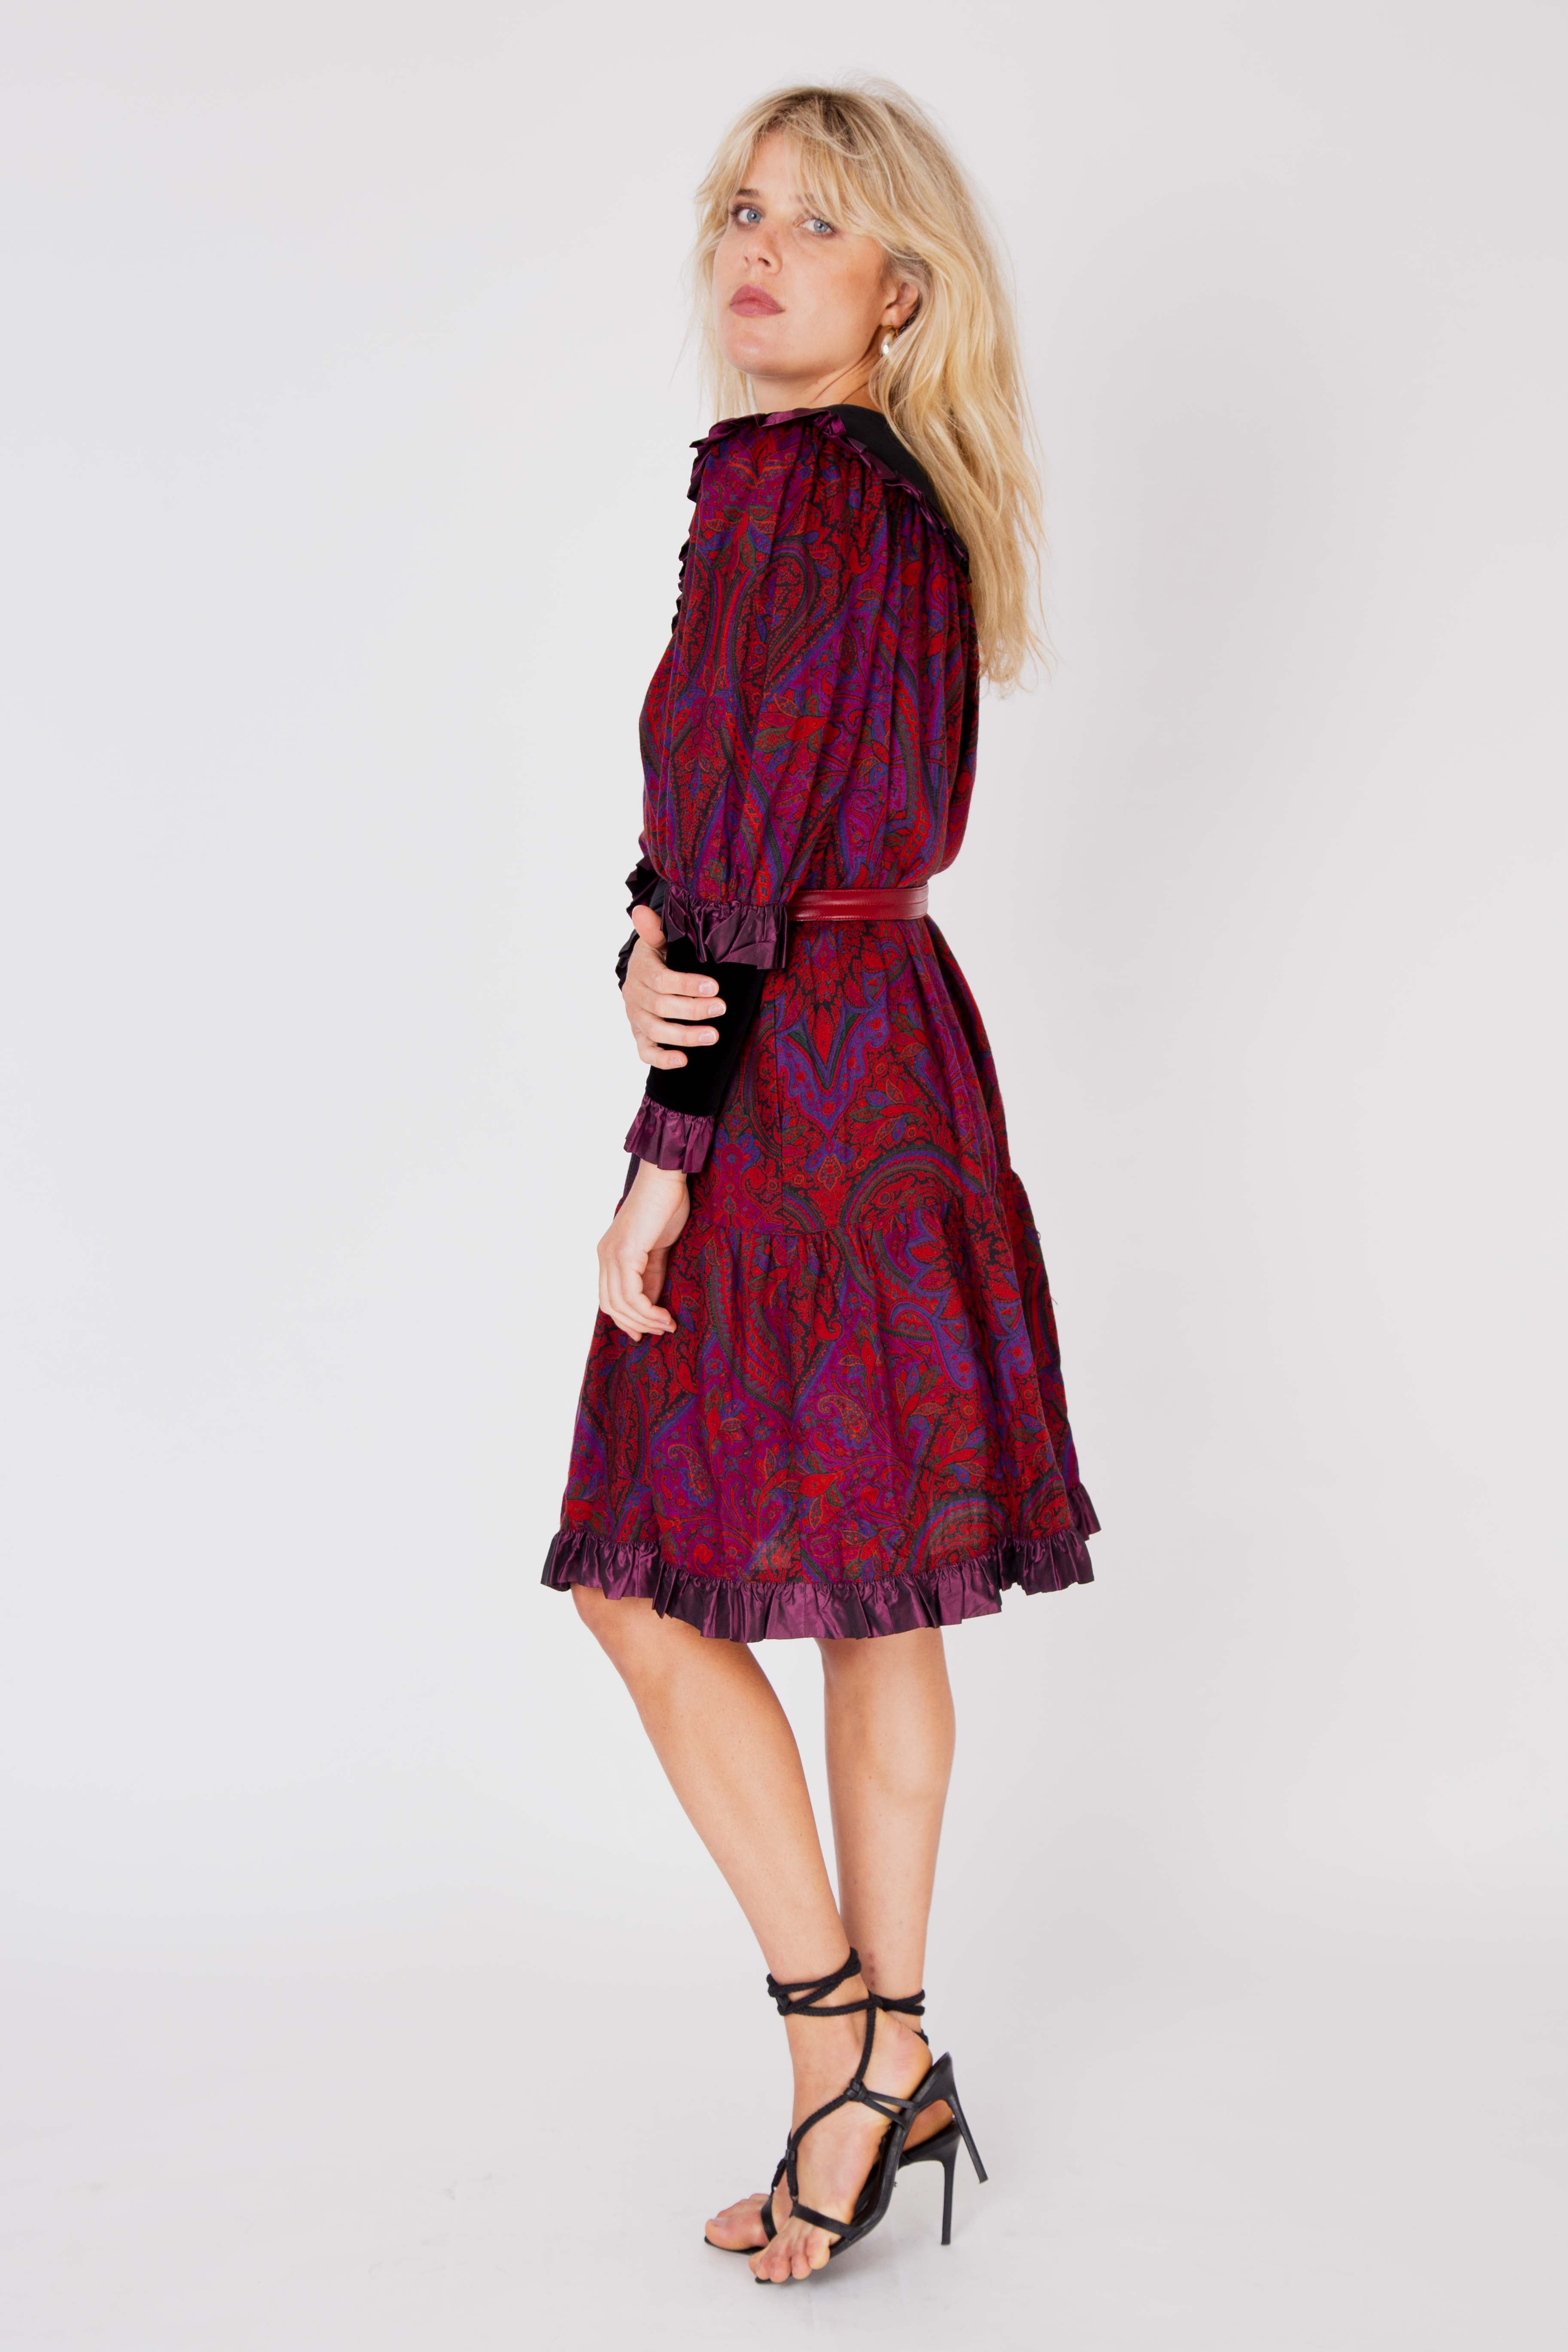 Yves Saint Laurent<br>1976/77 wool & velvet paisley print dress